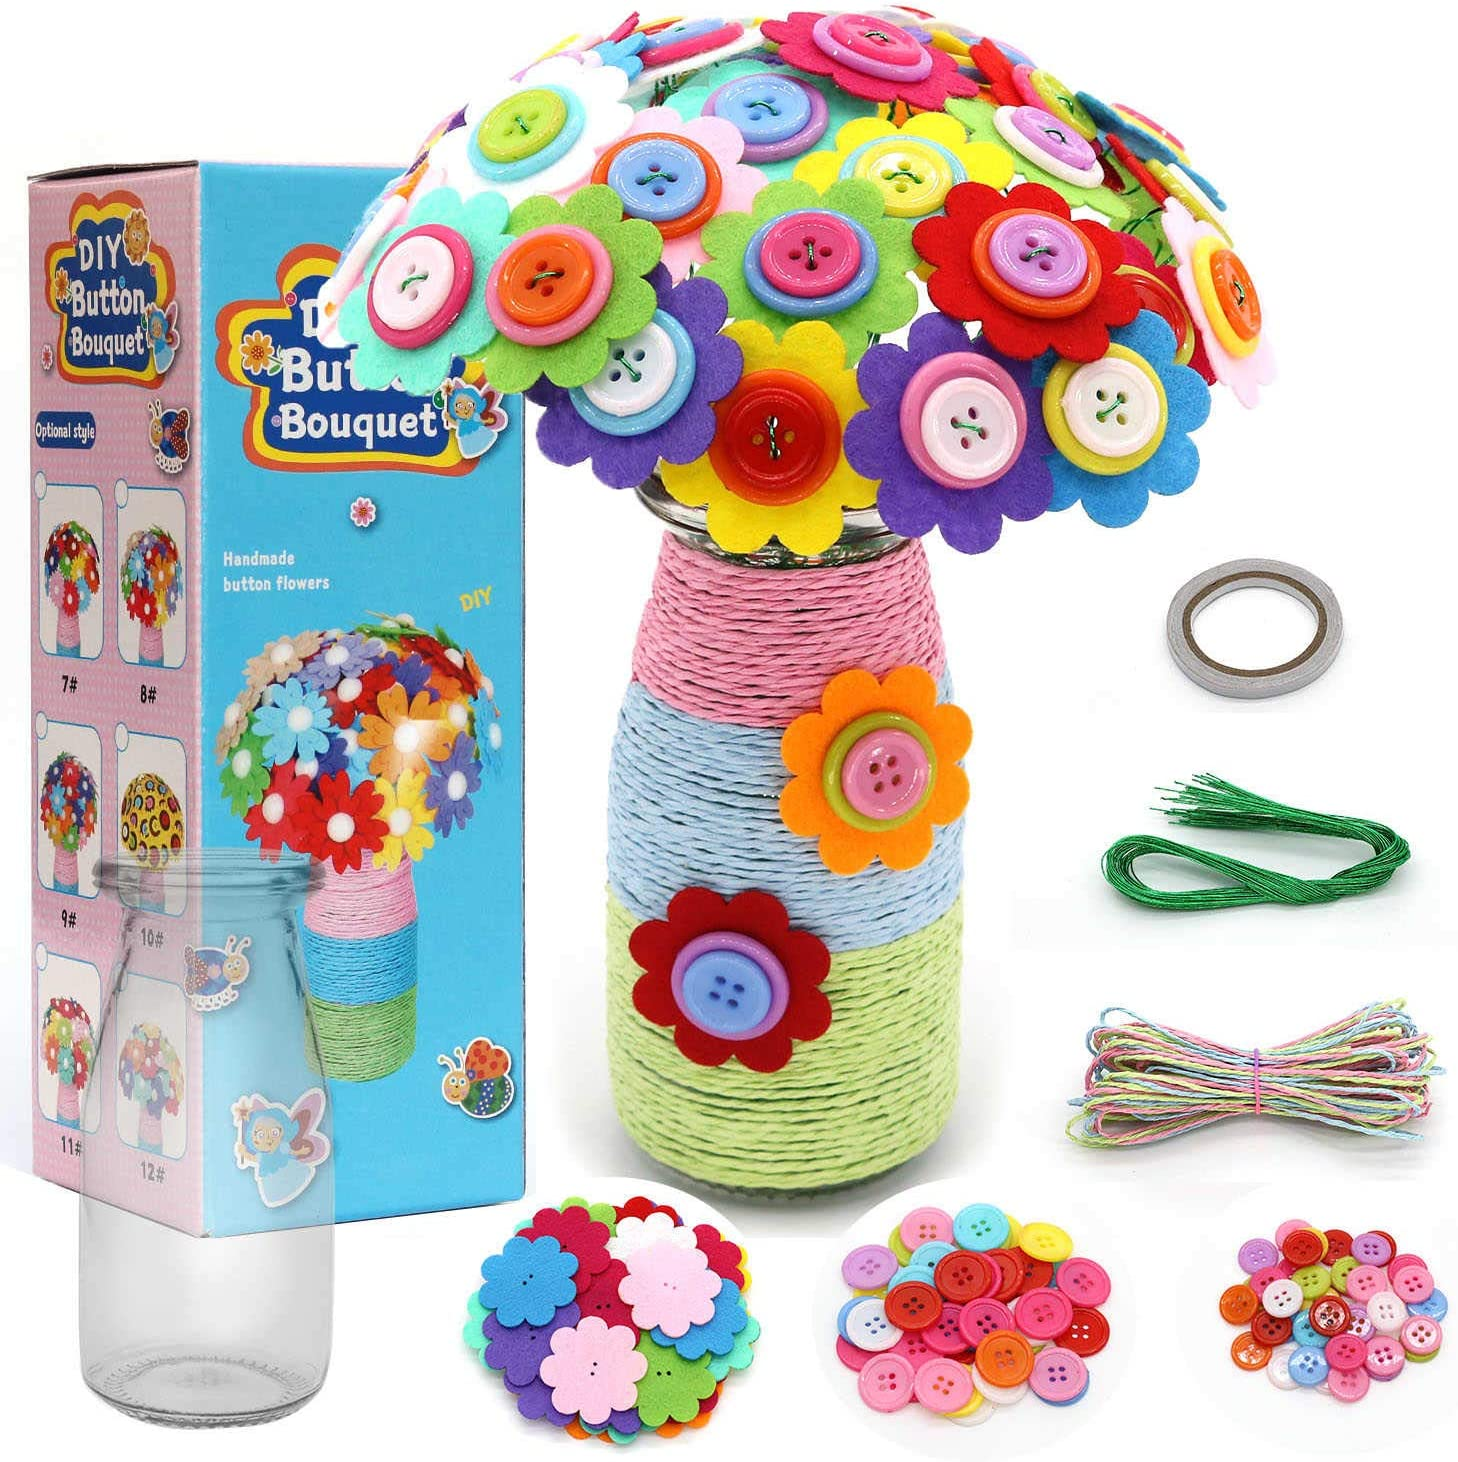 Make Your Own Flower Bouquet with Buttons and Felt Flowers Vase Art Toy /& Craft Project for Children DIY Flower Craft Kit Fun Activity Gift for Boys /& Girls Age 4 5 6 7 8 9 10 Year Old Carnation